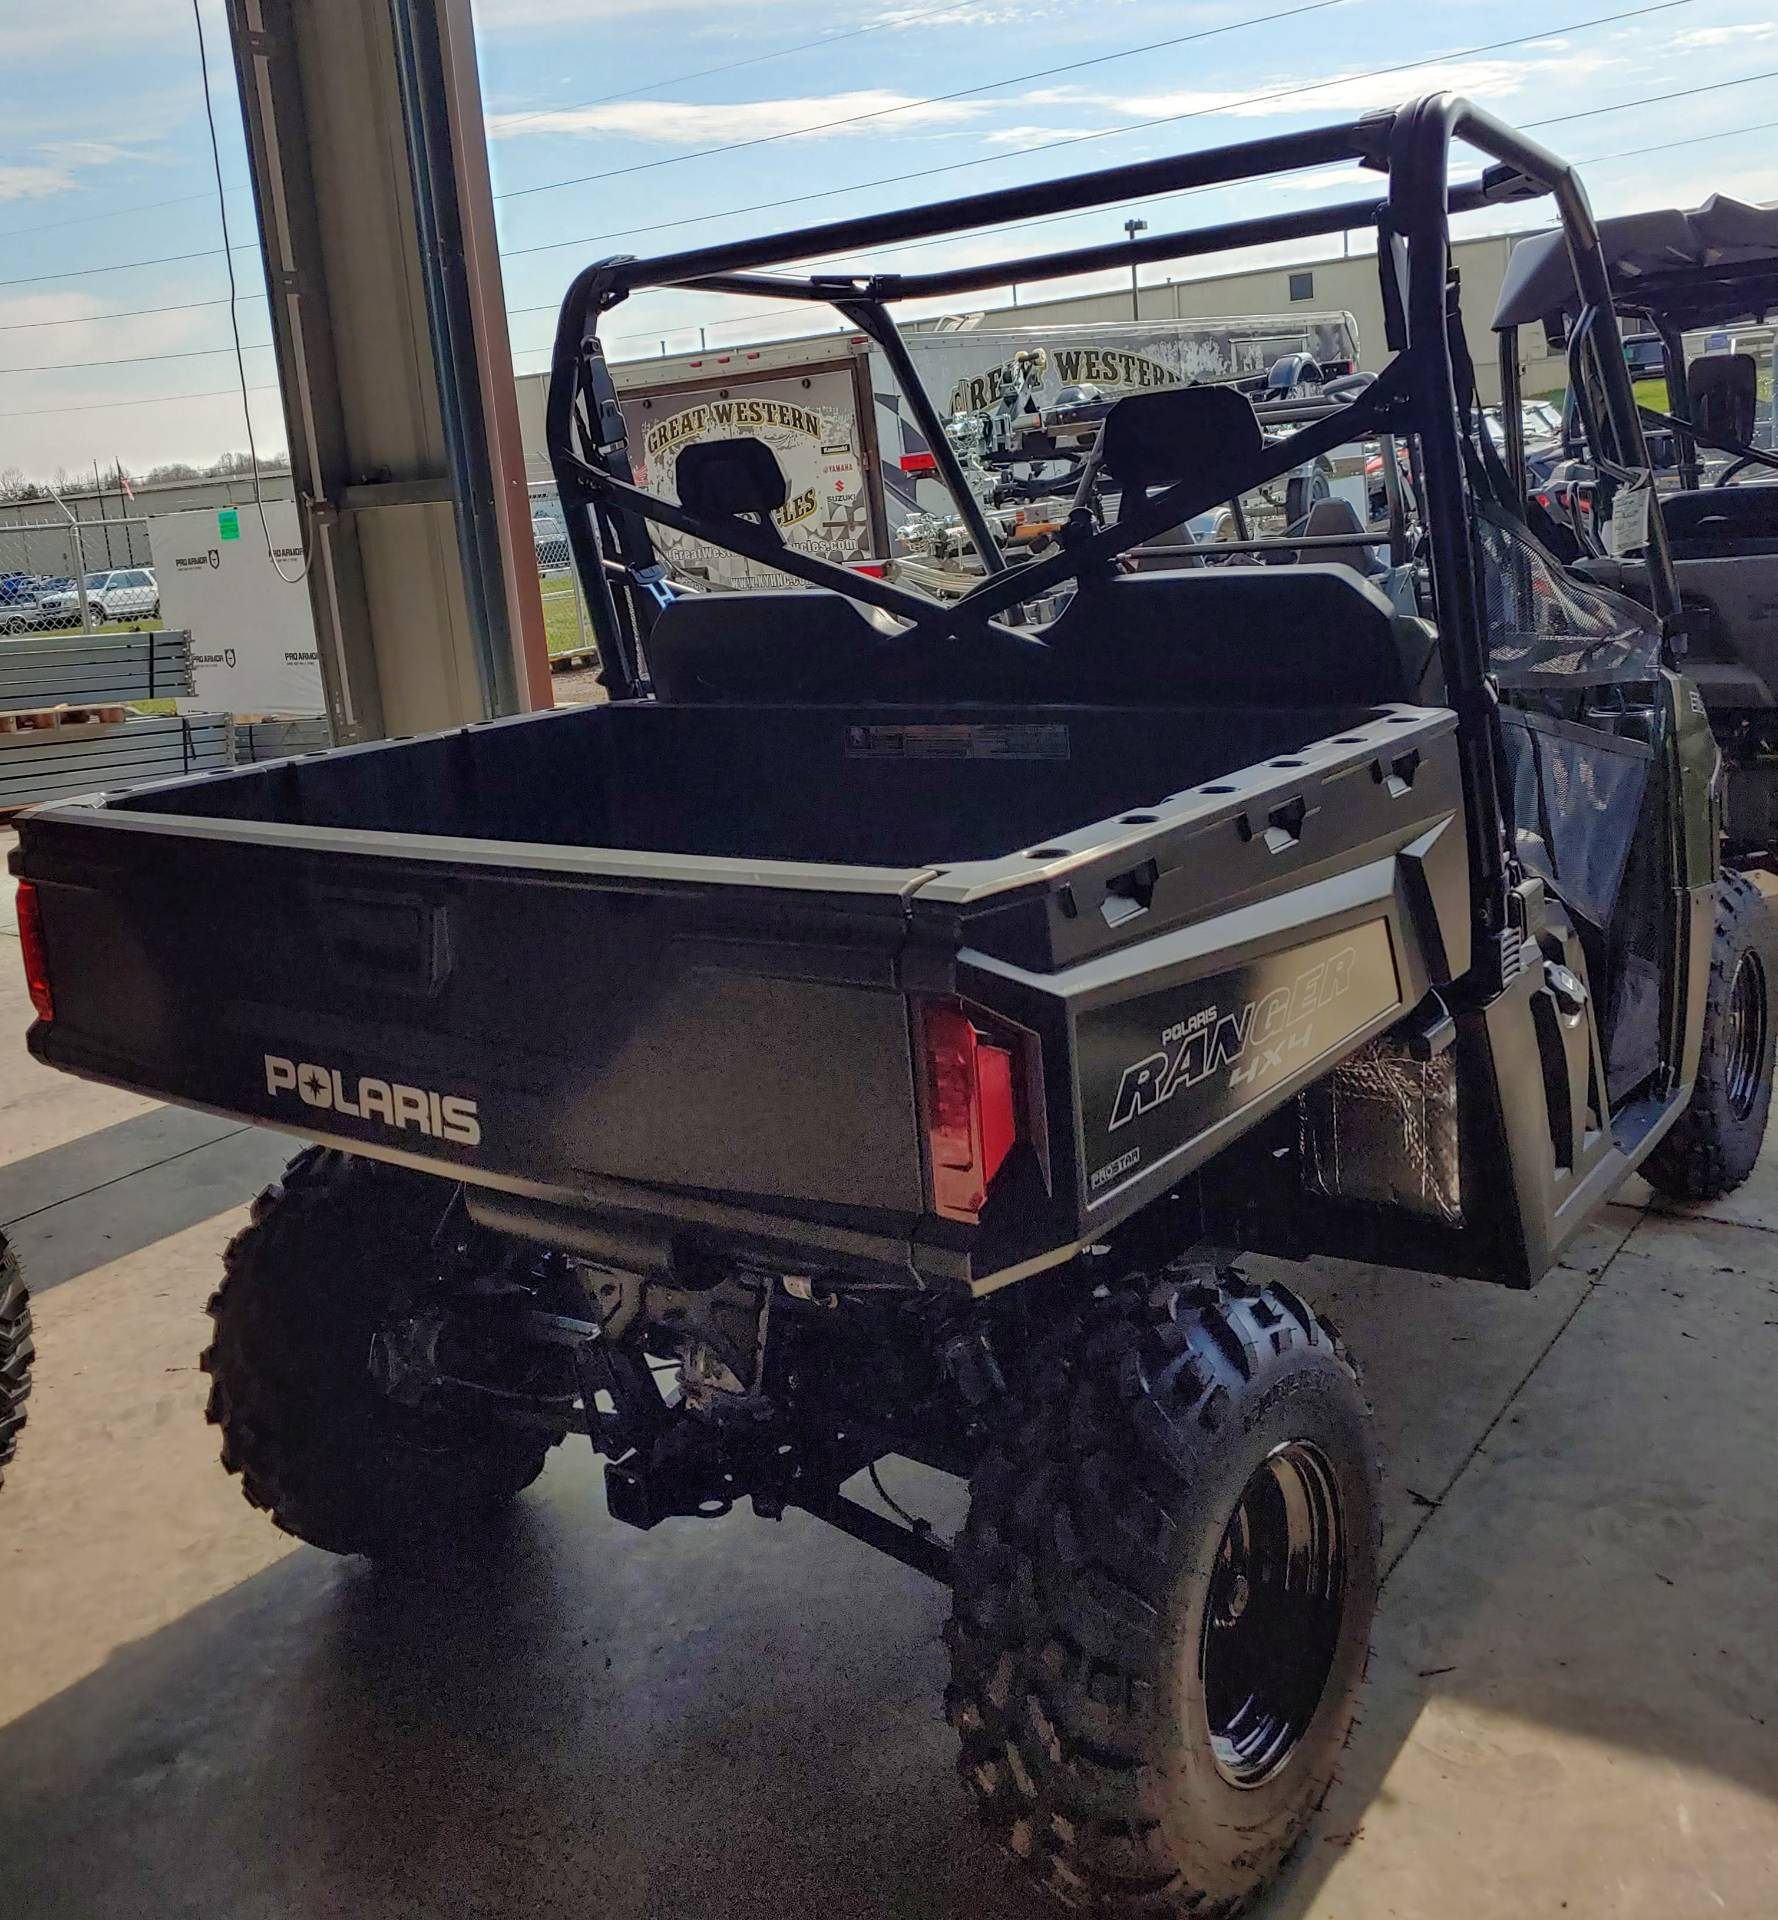 2019 Polaris Ranger XP 900 in Statesville, North Carolina - Photo 5